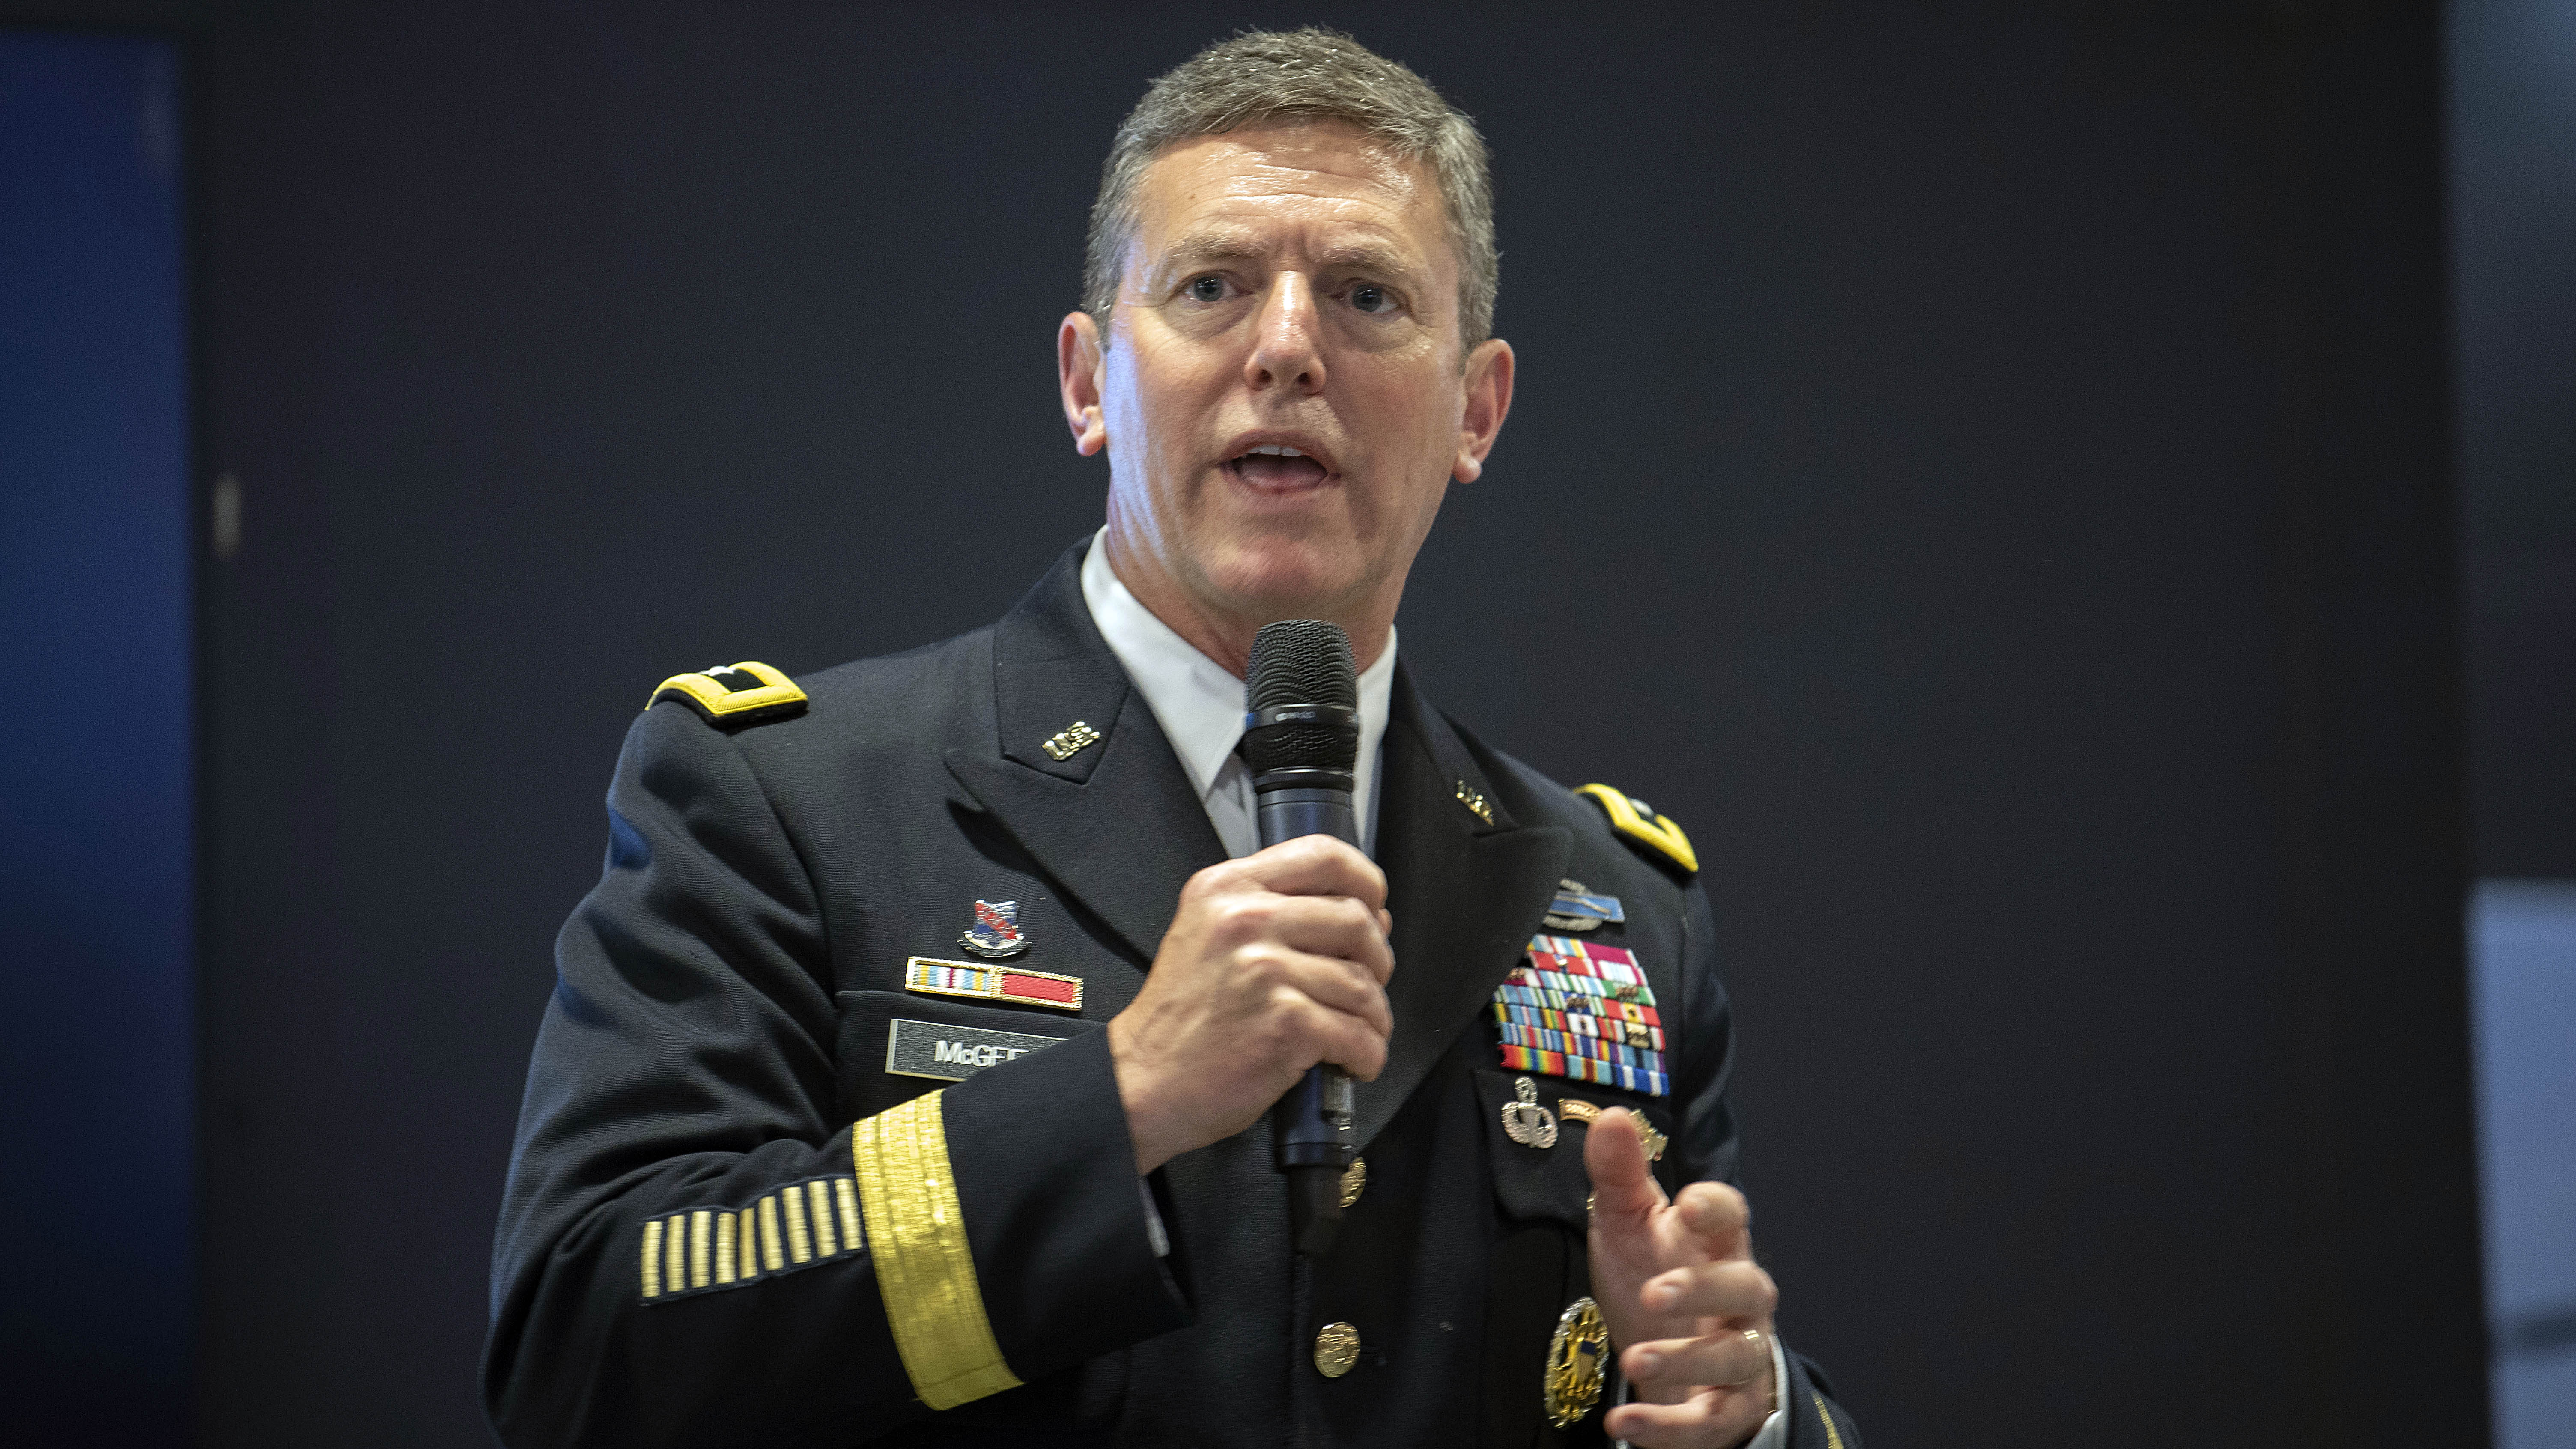 MG Joseph McGee speaks during the Army Talent Alignment Process seminar at the 2019 AUSA Annual Meeting and Exposition at the Washington Convention Center on Oct. 15, 2019.